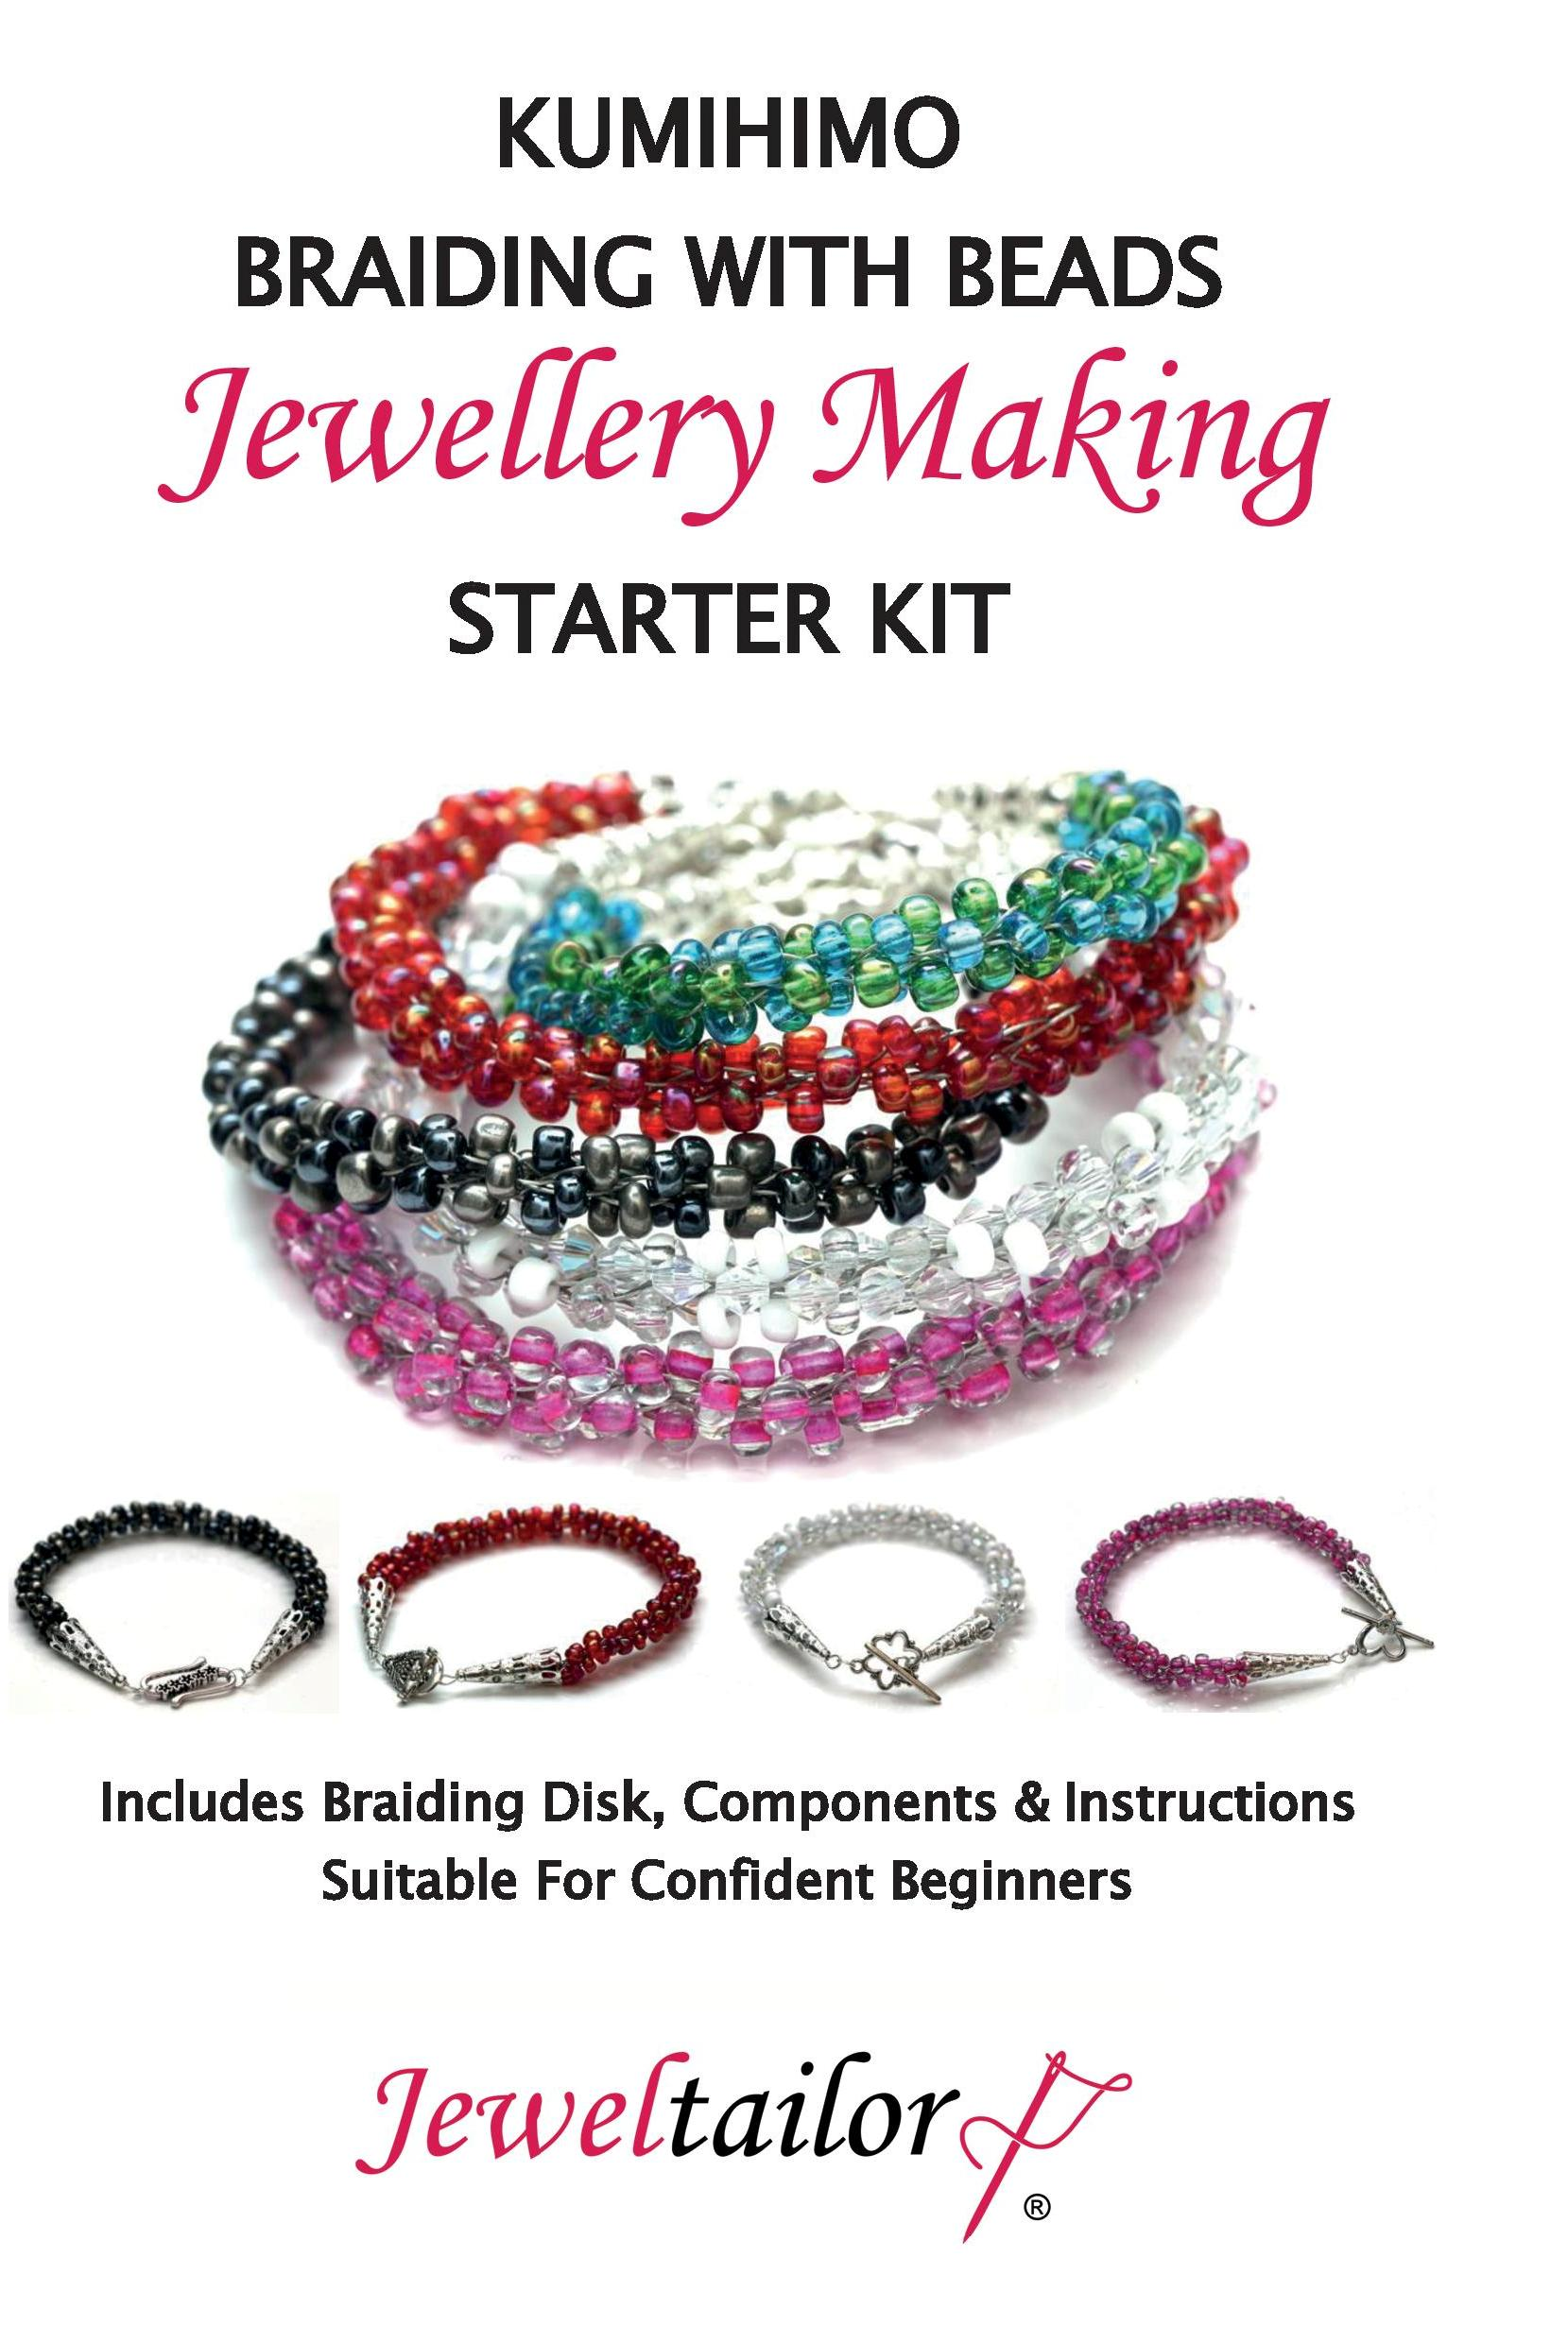 New Braiding Kits Launched!